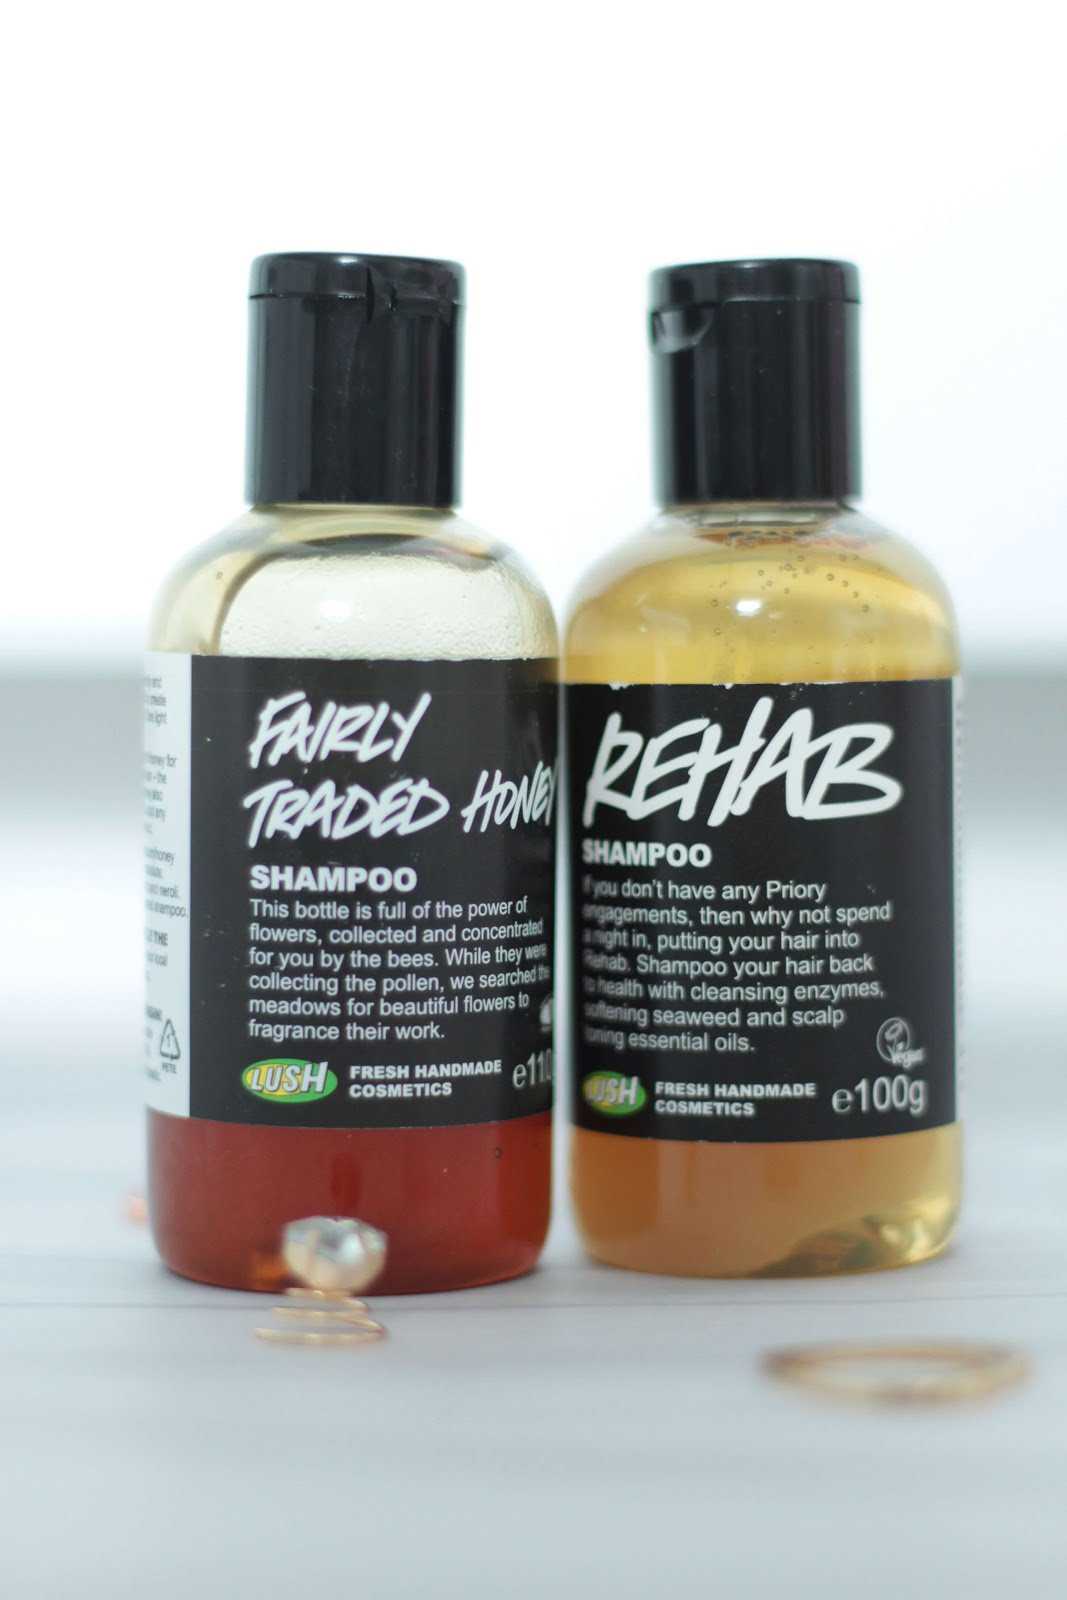 Lush rehab and fairly traded honey shampoo review